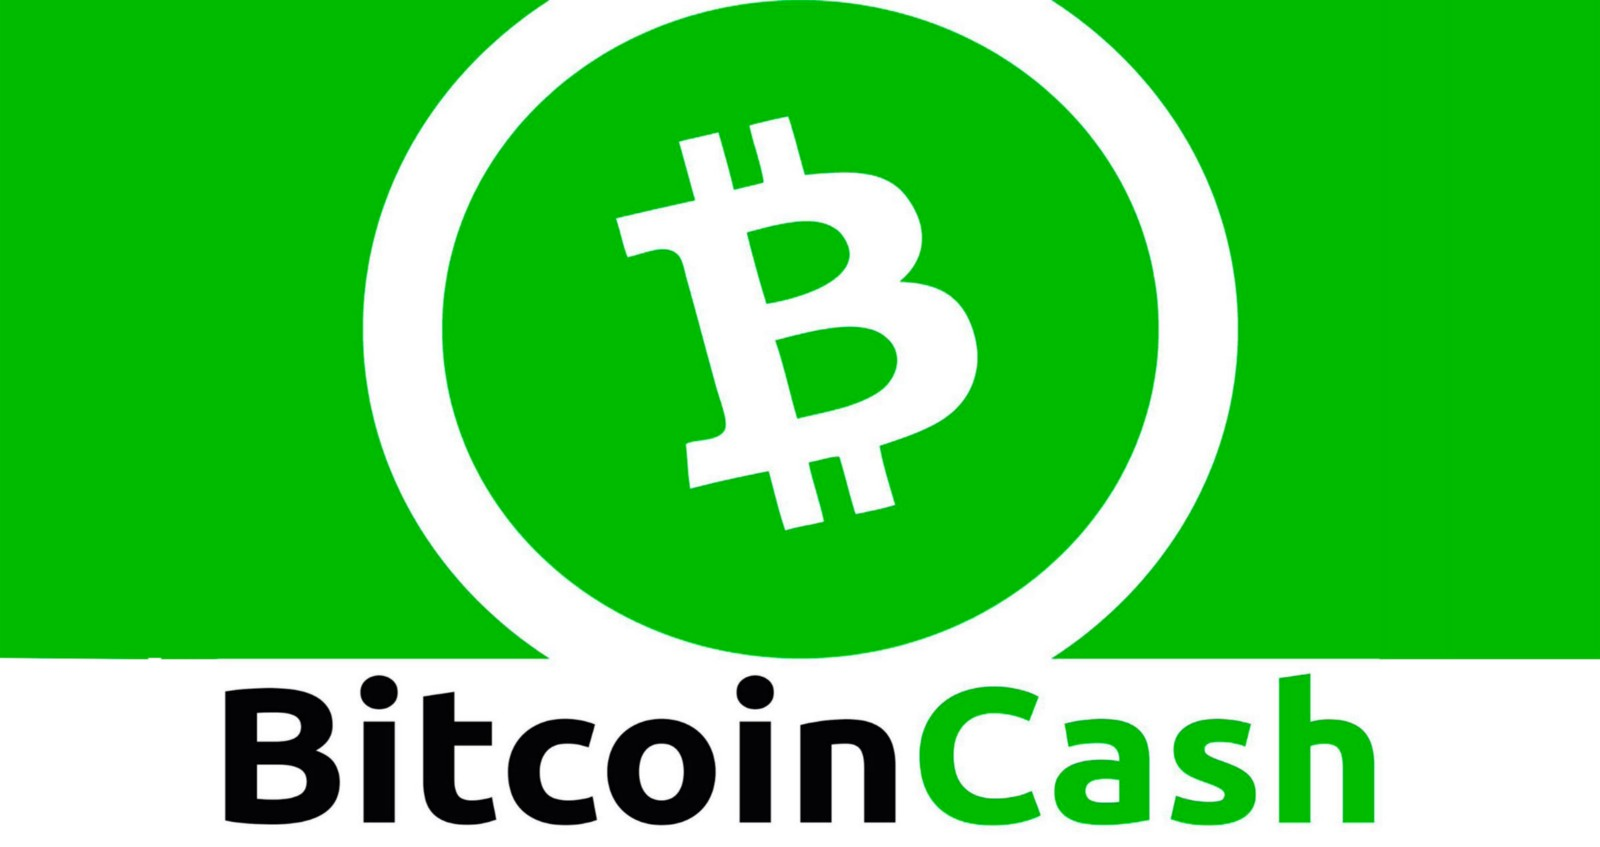 Bitcoin Cash Everything You Need To Know